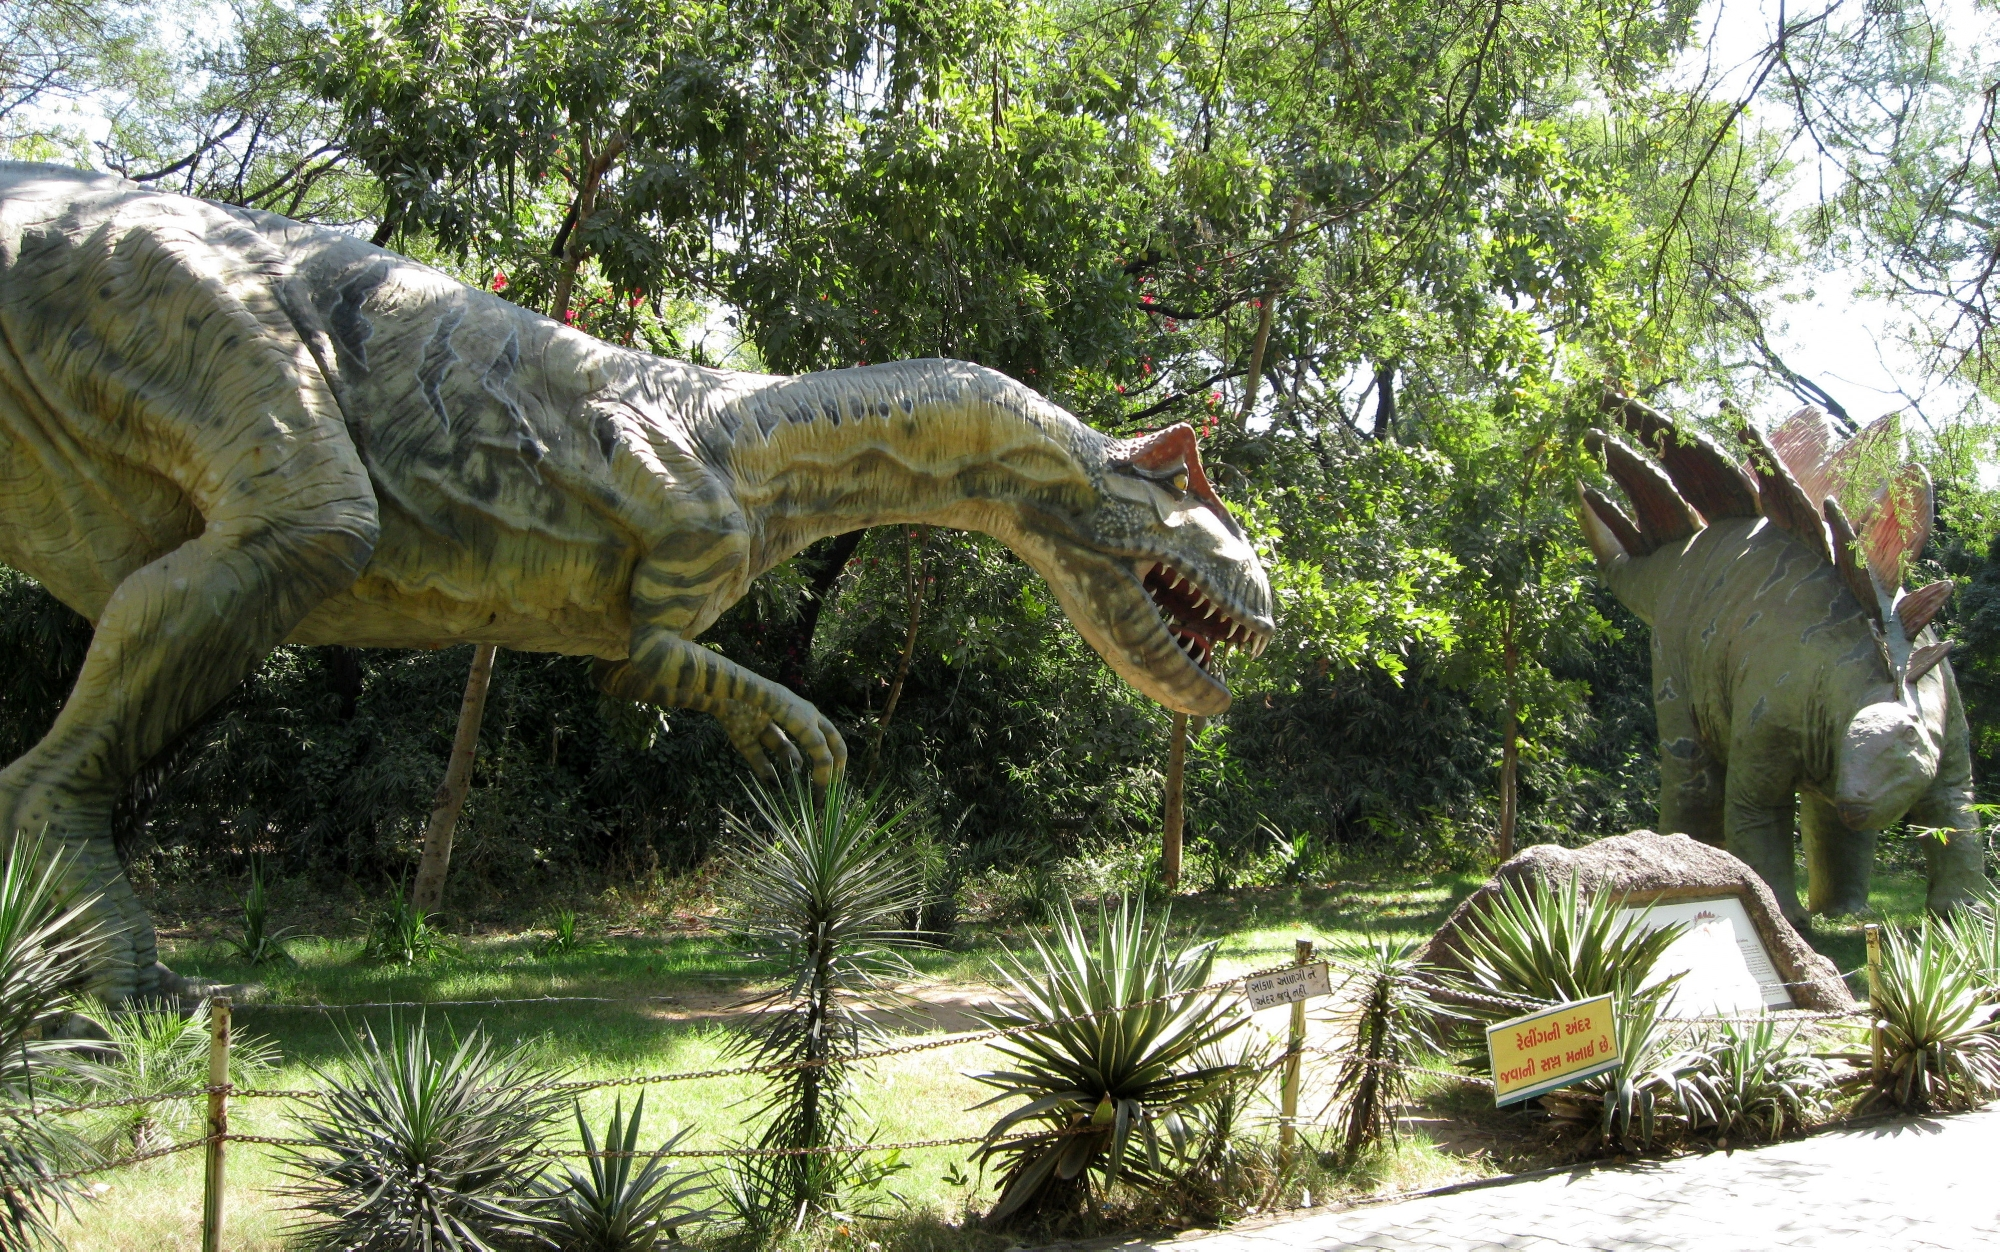 Why did dinosaurs disappeared from the face of the Earth?